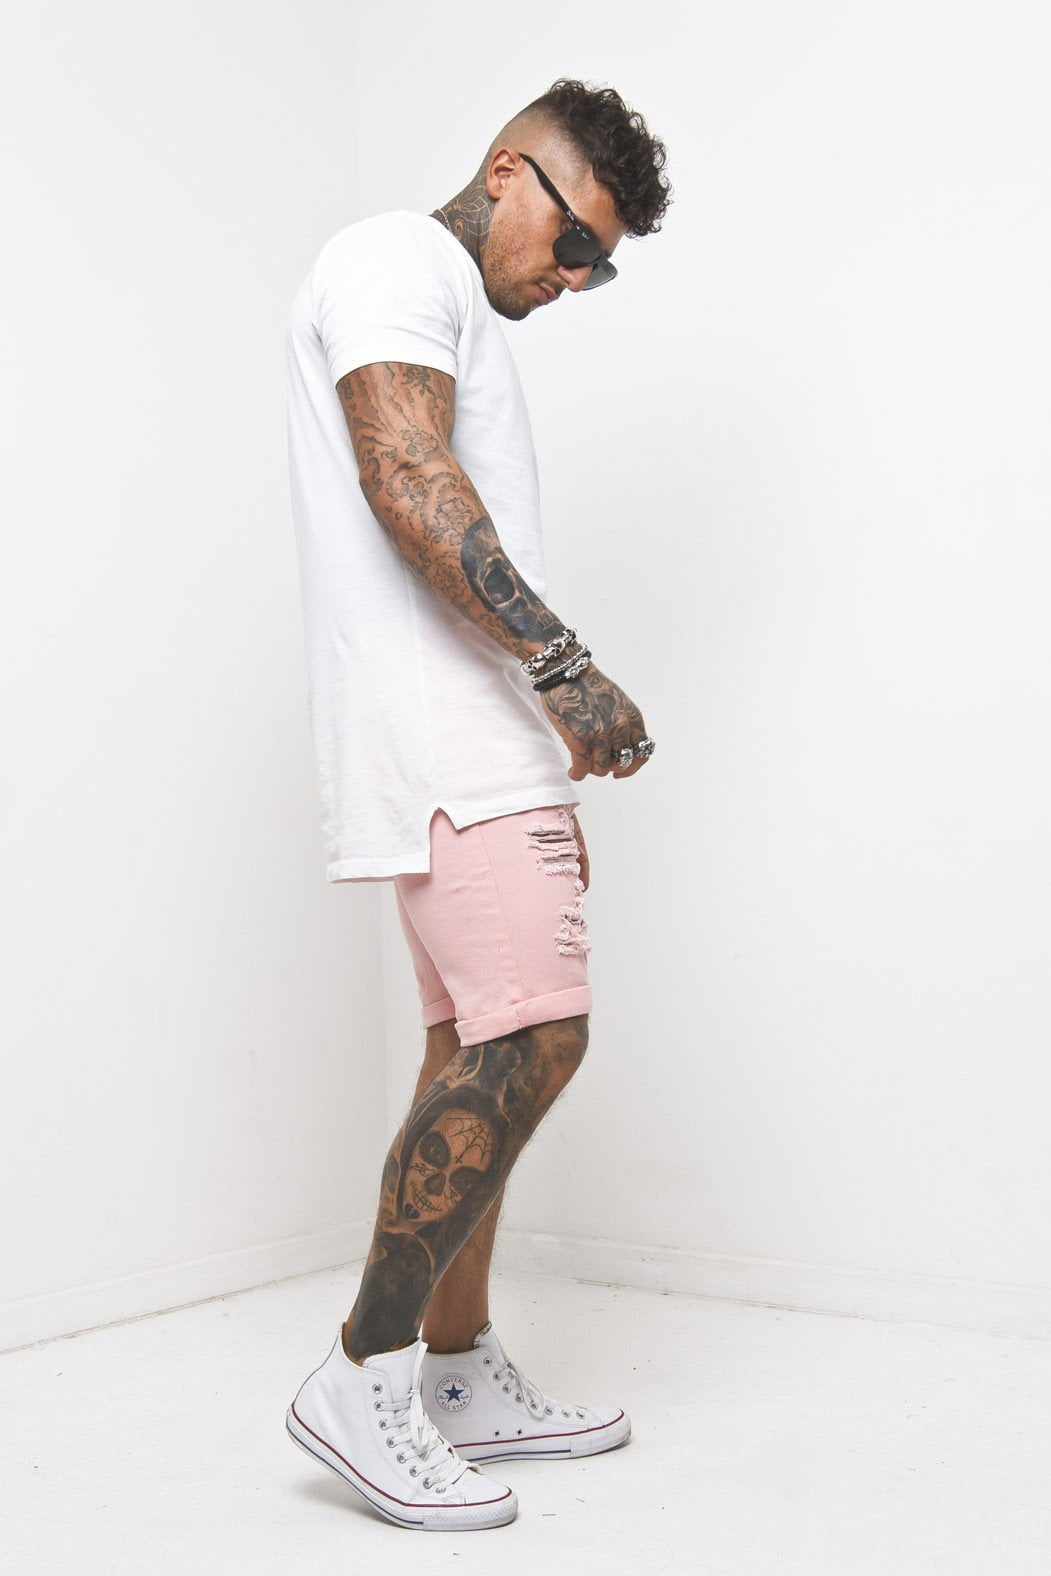 Liquor n Poker - Miami distressed Pink Shorts with all over ripping - Liquor N Poker  Liquor N Poker